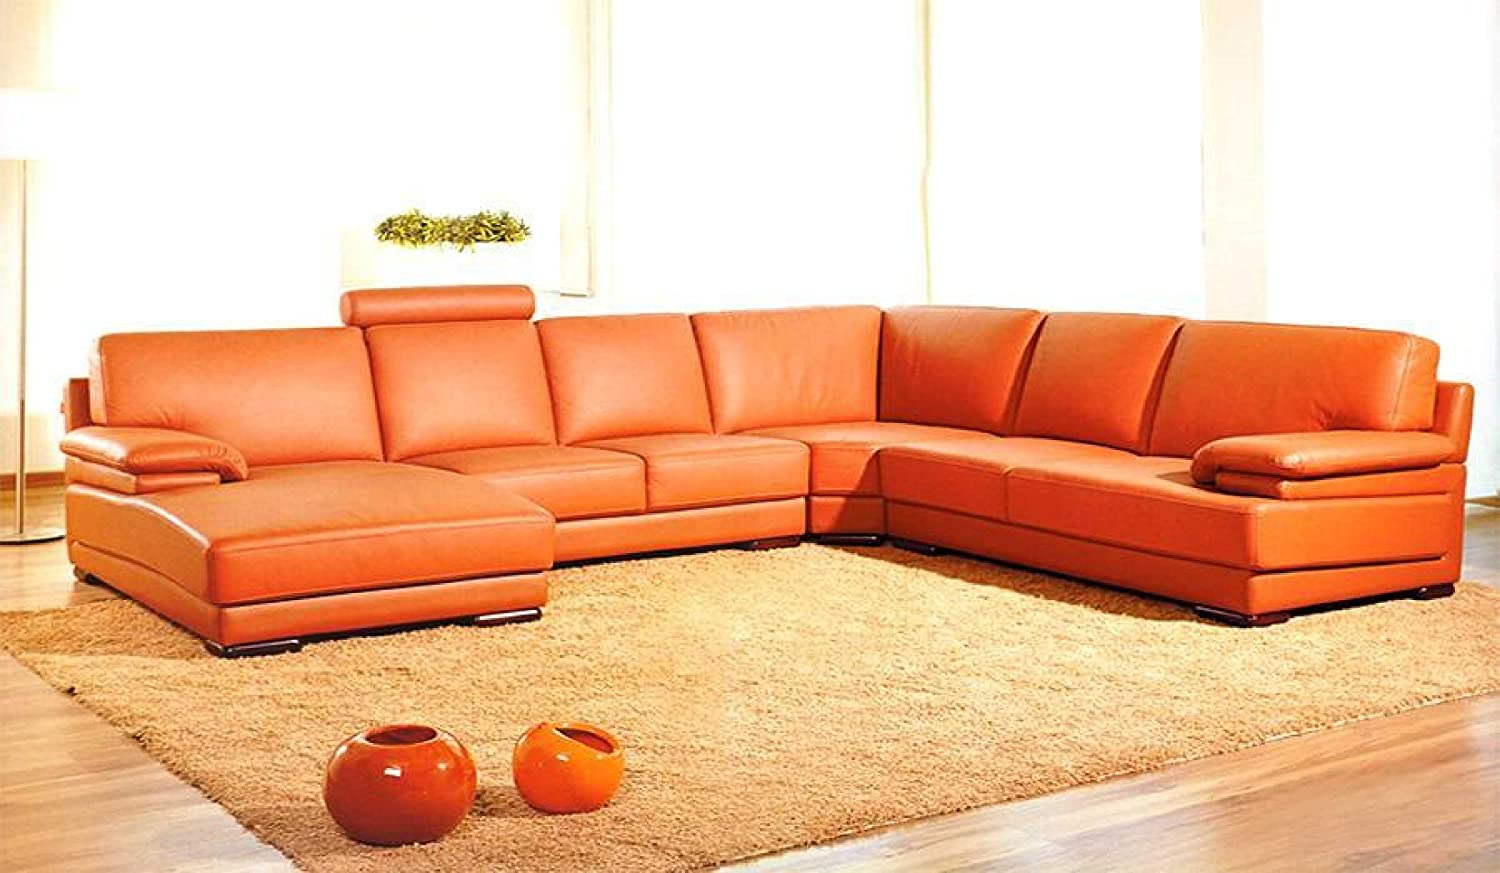 Etonnant Amazon.com: 2227 Orange Leather Contemporary Sectional Sofa With Chaise:  Kitchen U0026 Dining